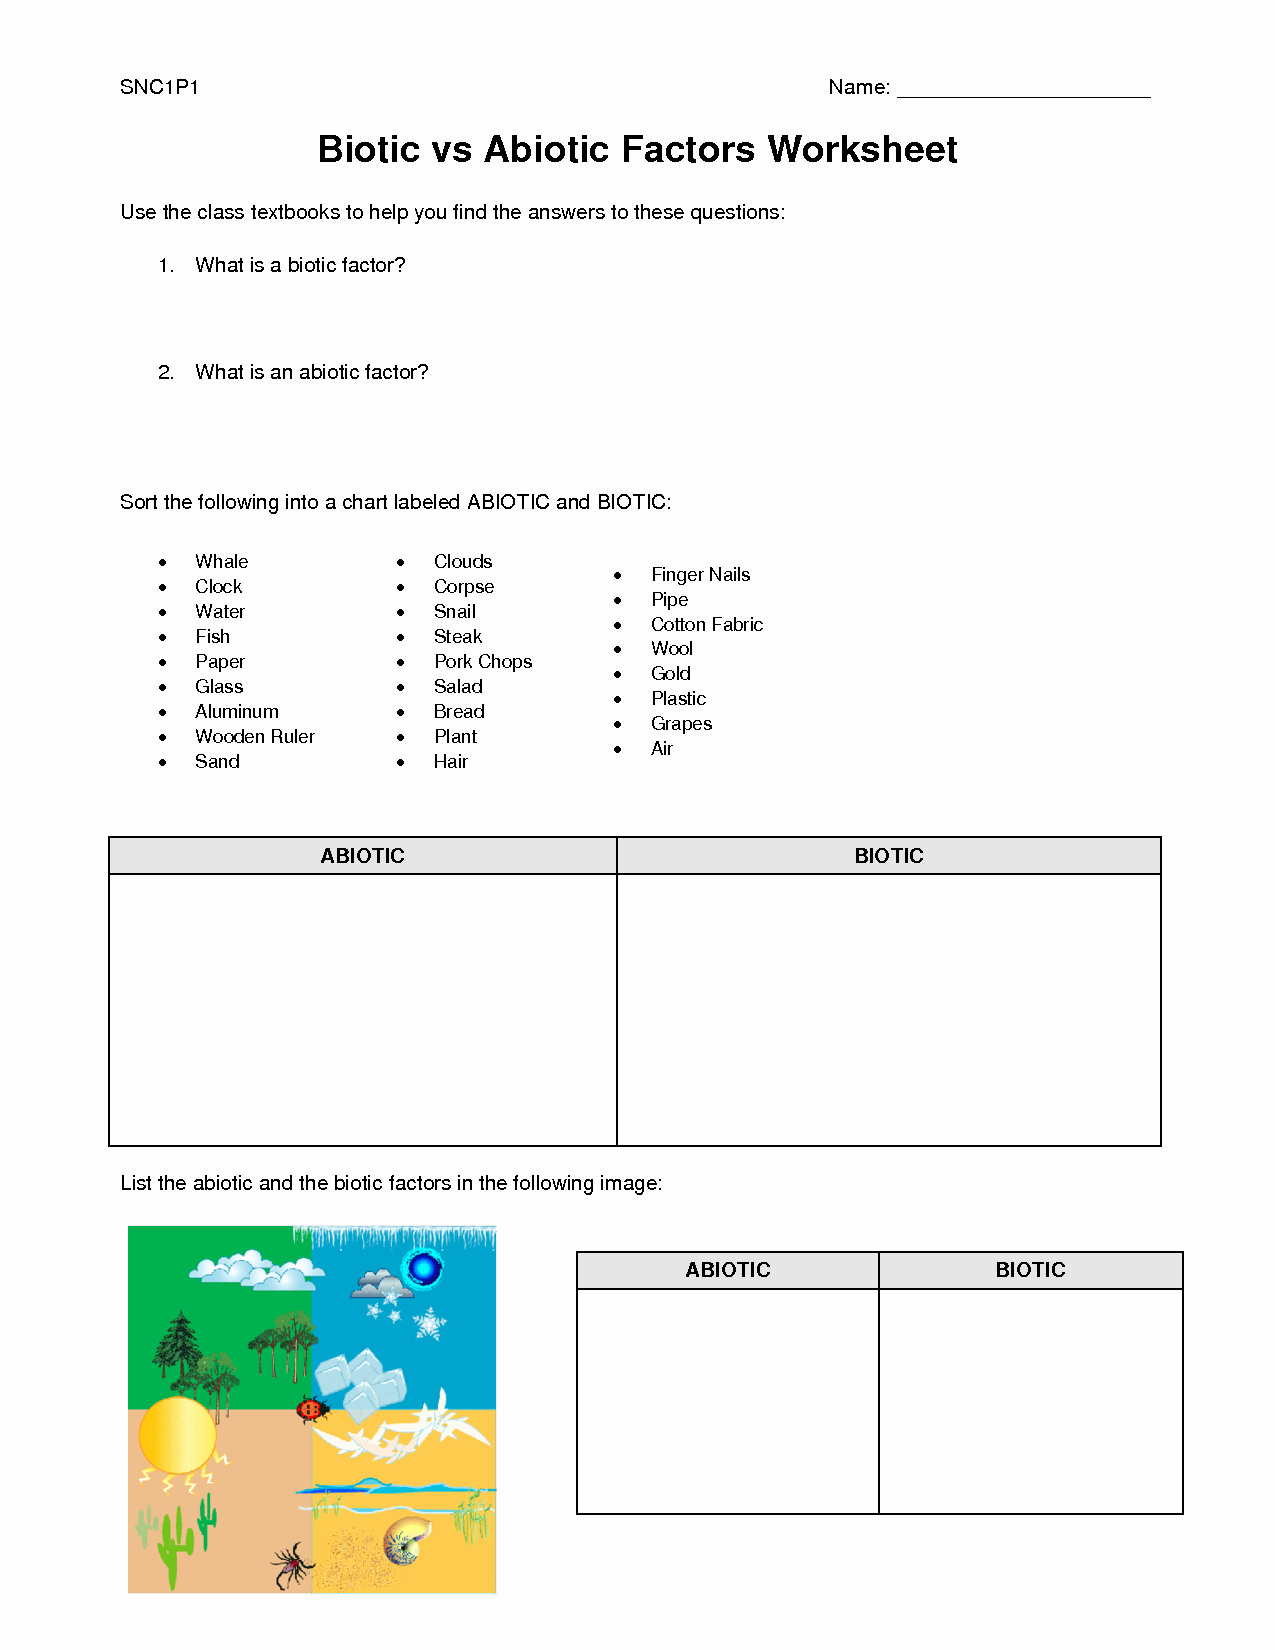 Abiotic Vs.biotic Factors Worksheet Answers Fresh Biotic and Abiotic Factors Worksheet Google Search